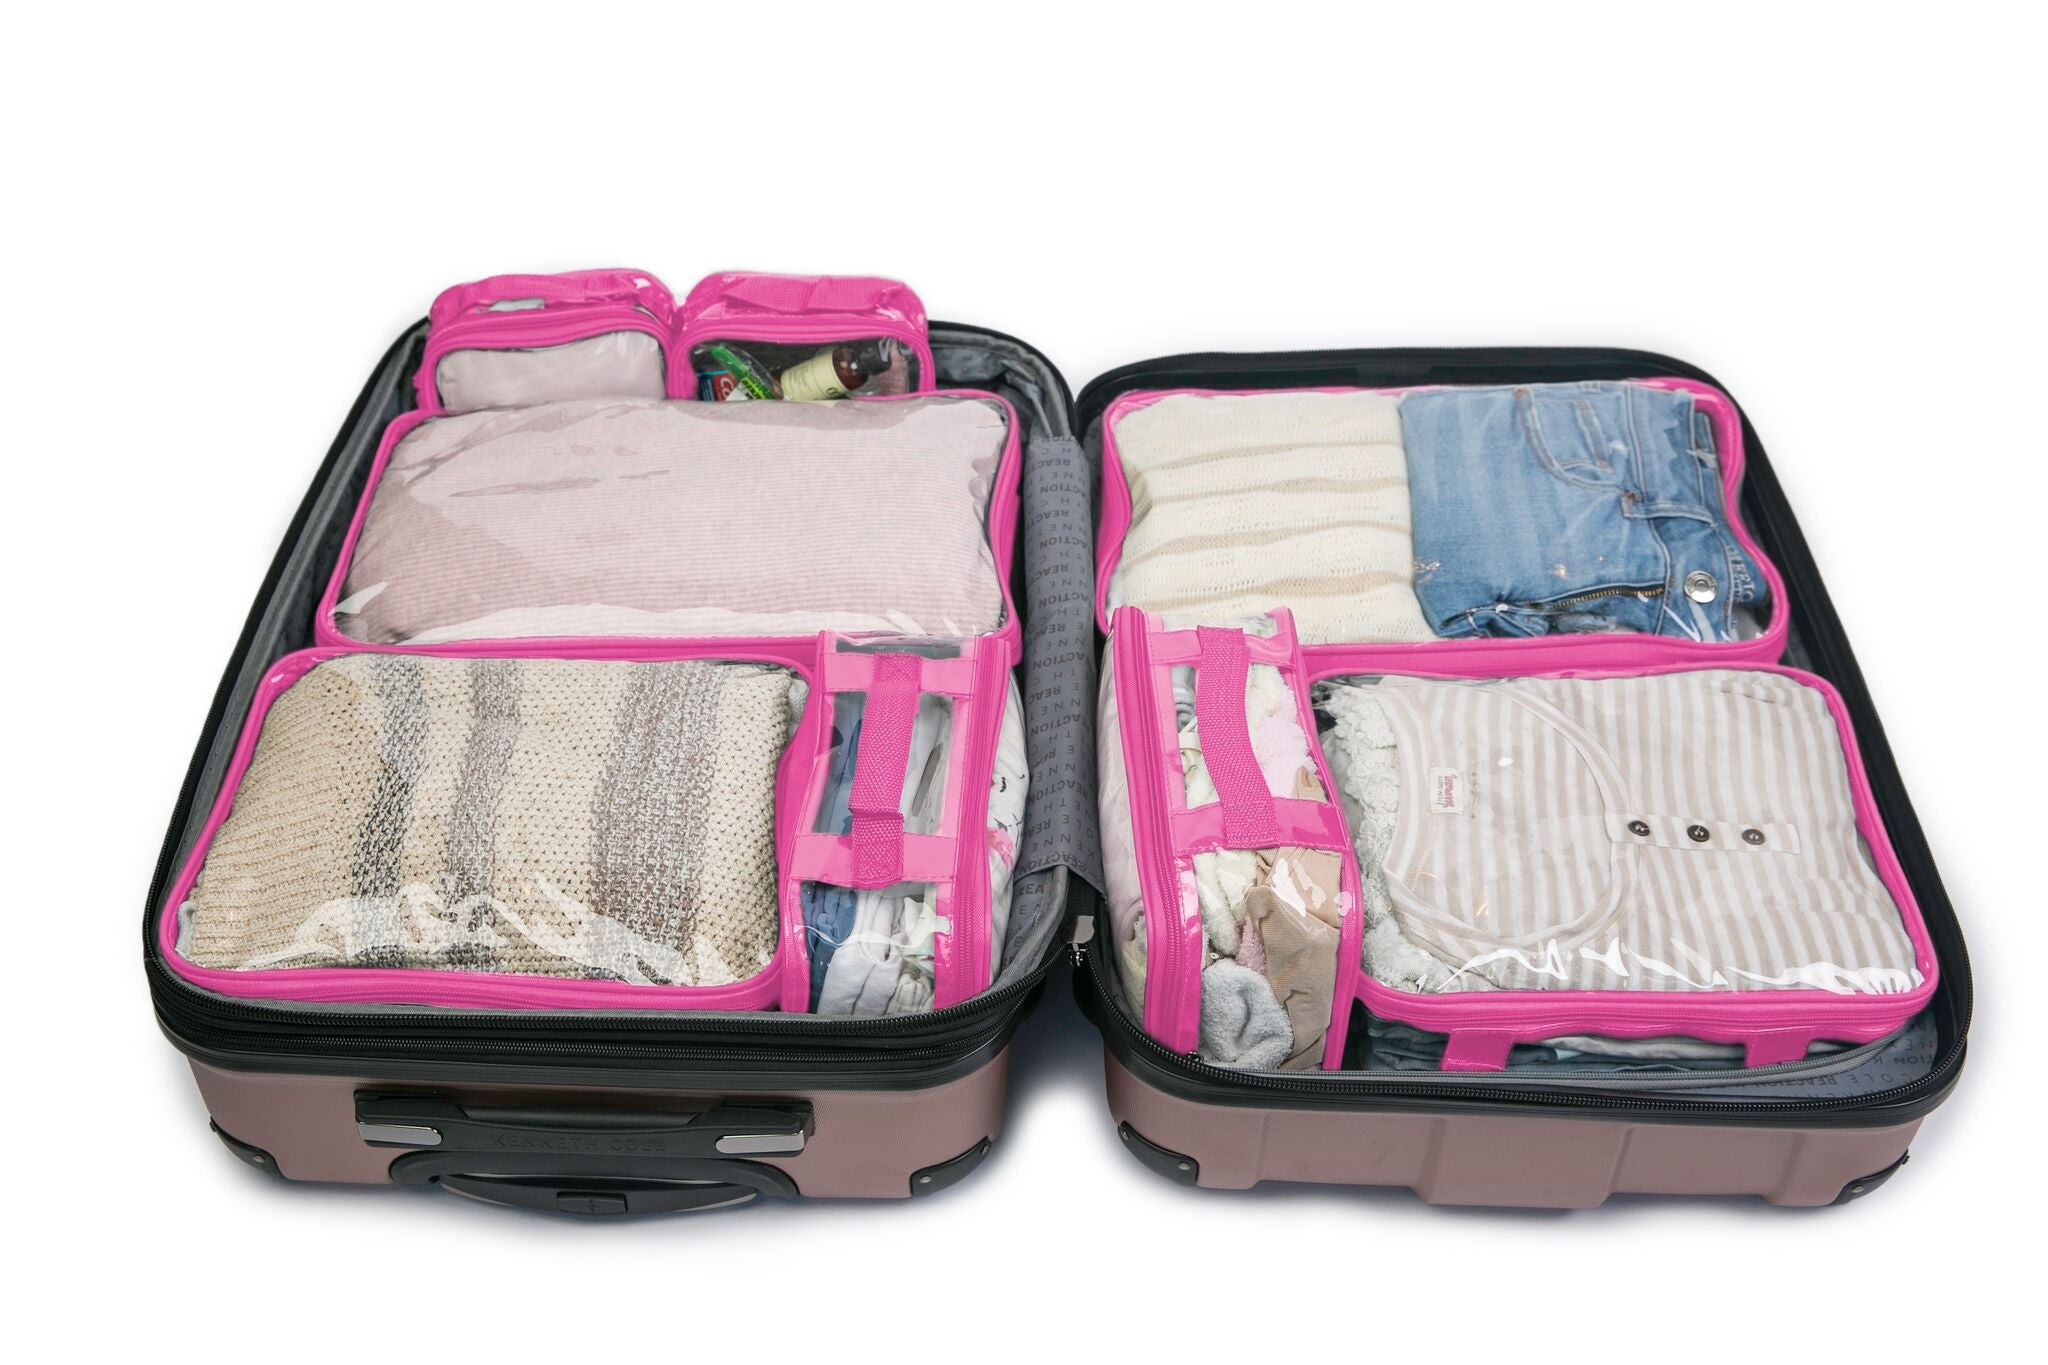 Pink packing cubes inside blue suitcase